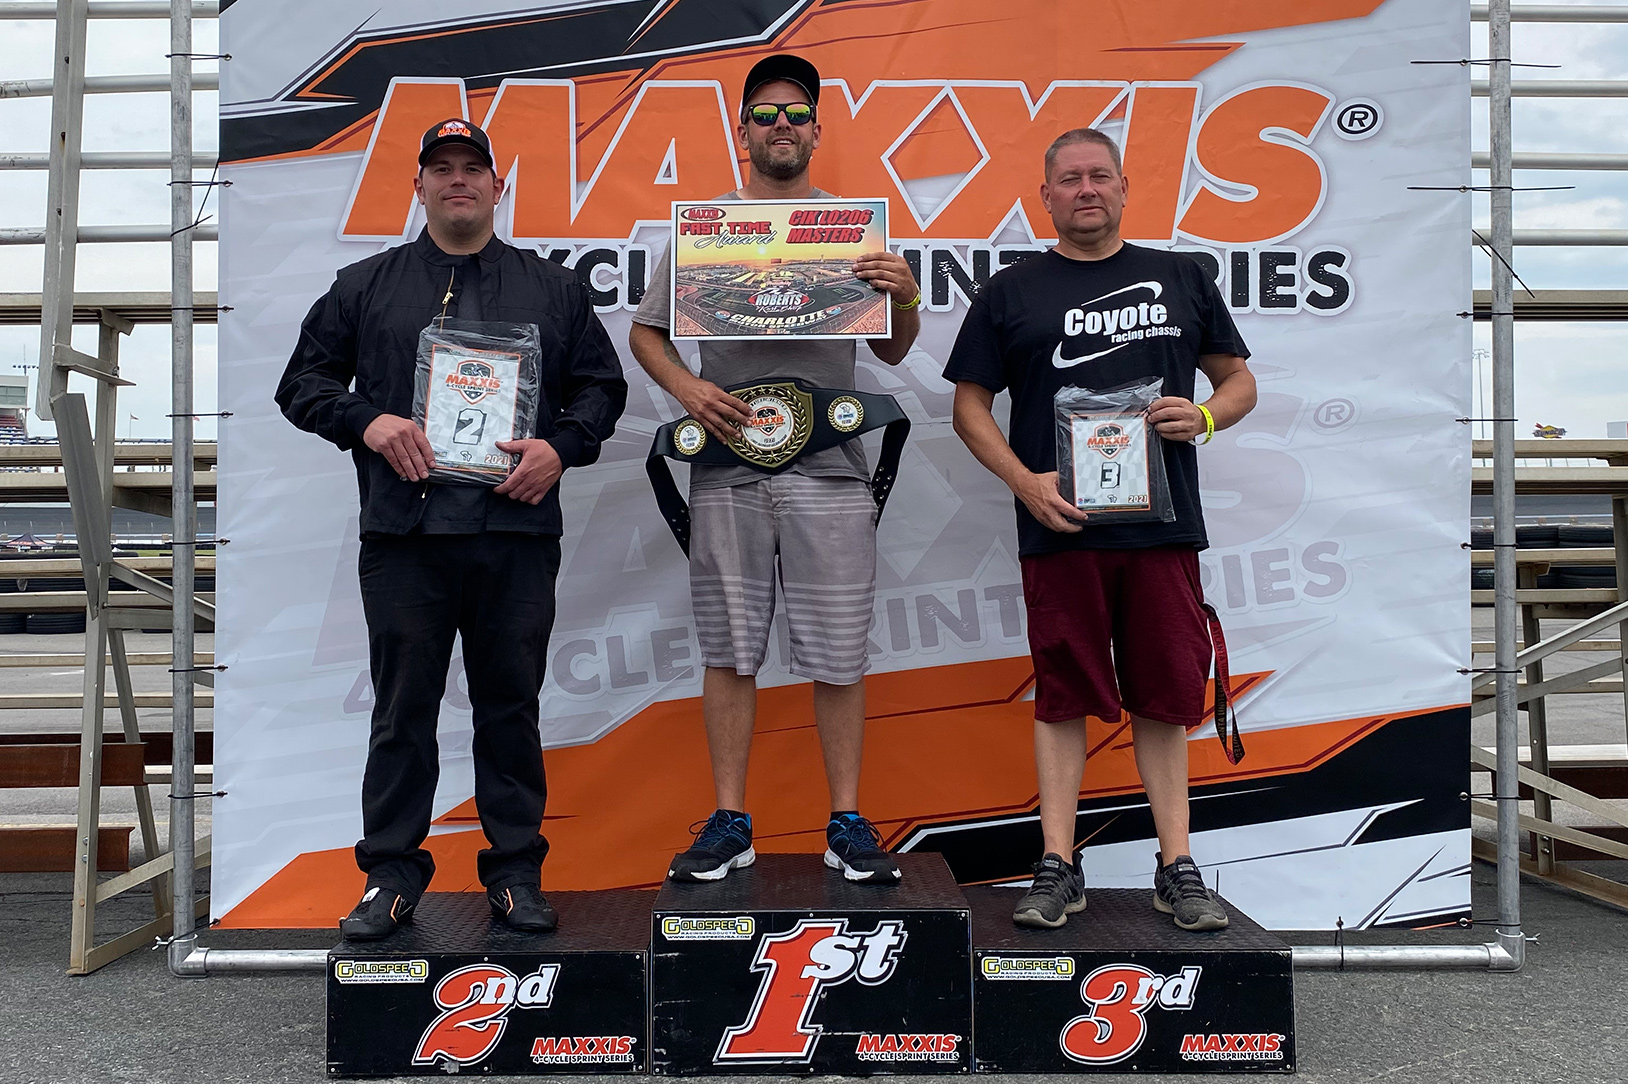 Eric Fagan atop the Masters podium over Tim Skinner and James Inscoe